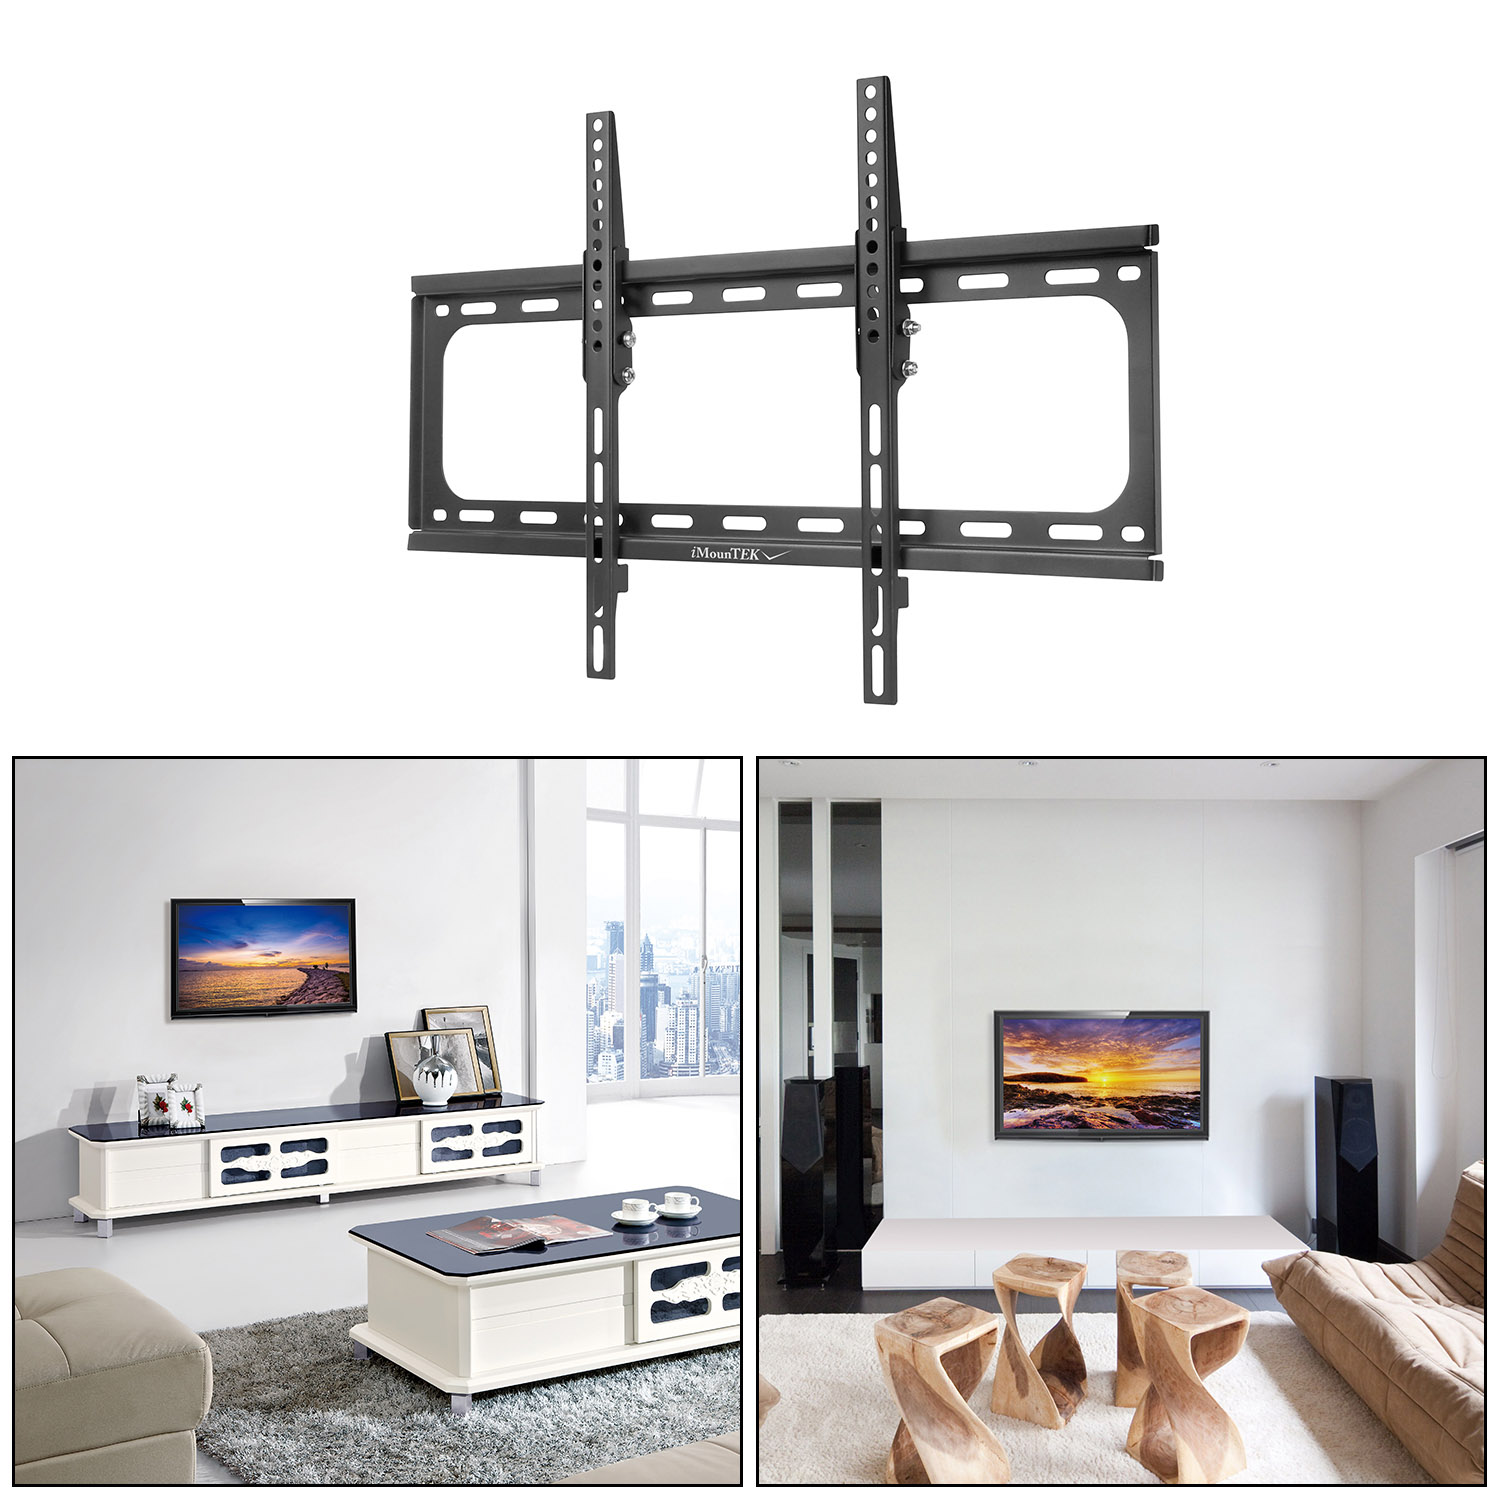 "iMounTEK Tilting TV Wall Mount Bracket For 37""- 70"" LED/LCD/OLED/Plasma Flat Screen TV. Full Motion Swivel Articulating Dual Arms, 110 LBS Hold- Sony/LG/Samsung/Panasonic/Vizio/Toshiba"